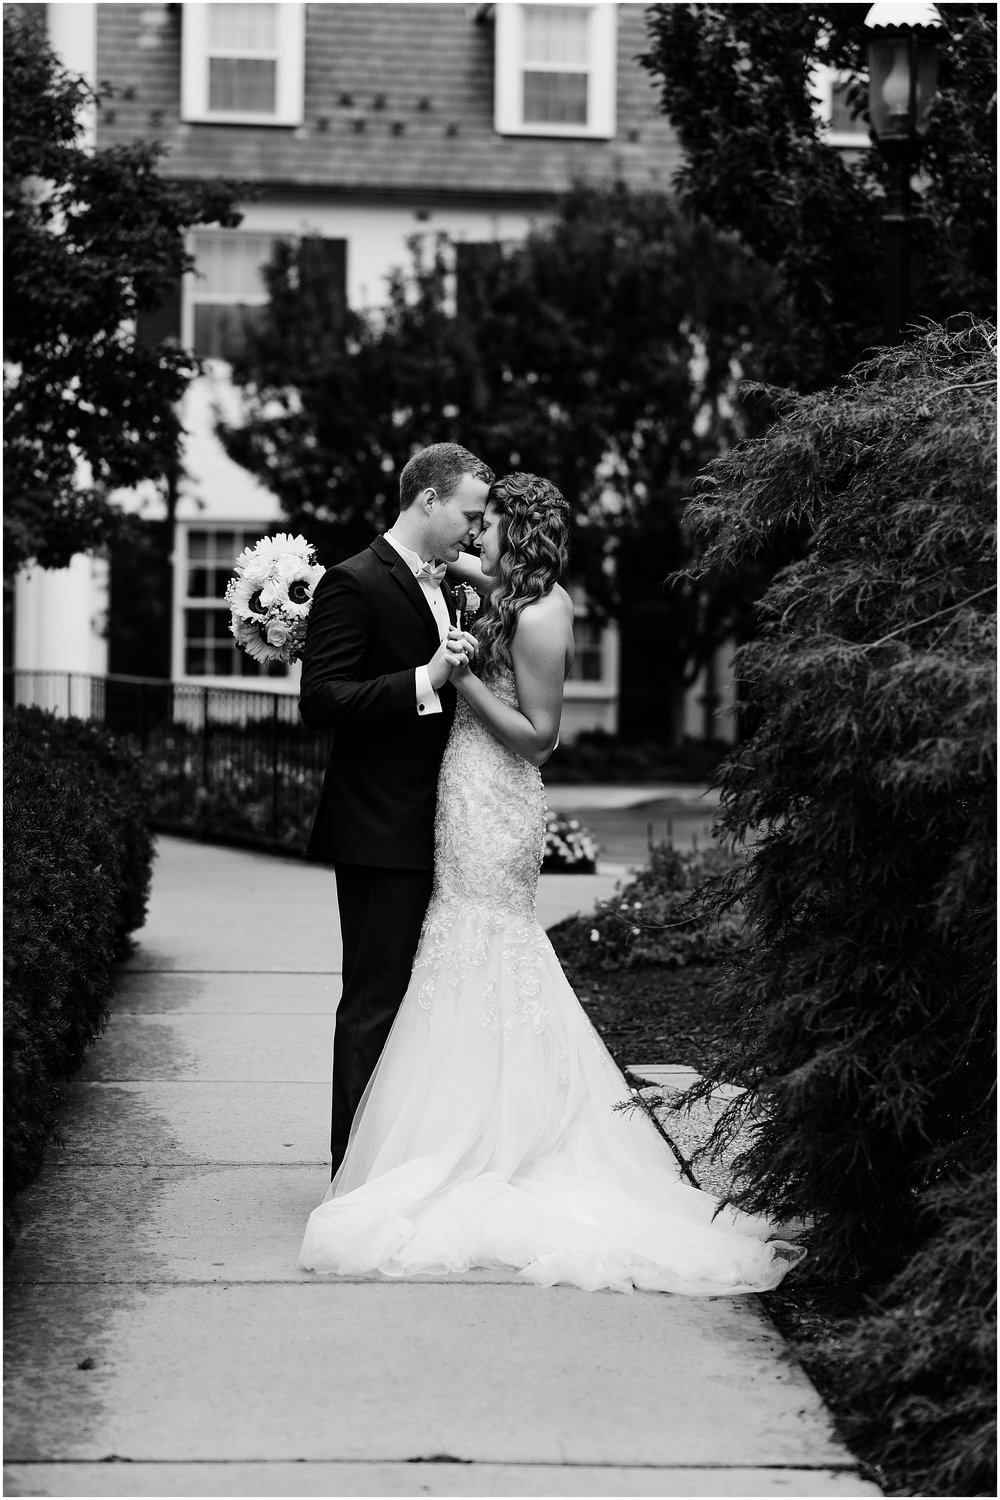 Hannah Leigh Photography Nittany Lion Inn Wedding State College PA_5050.jpg